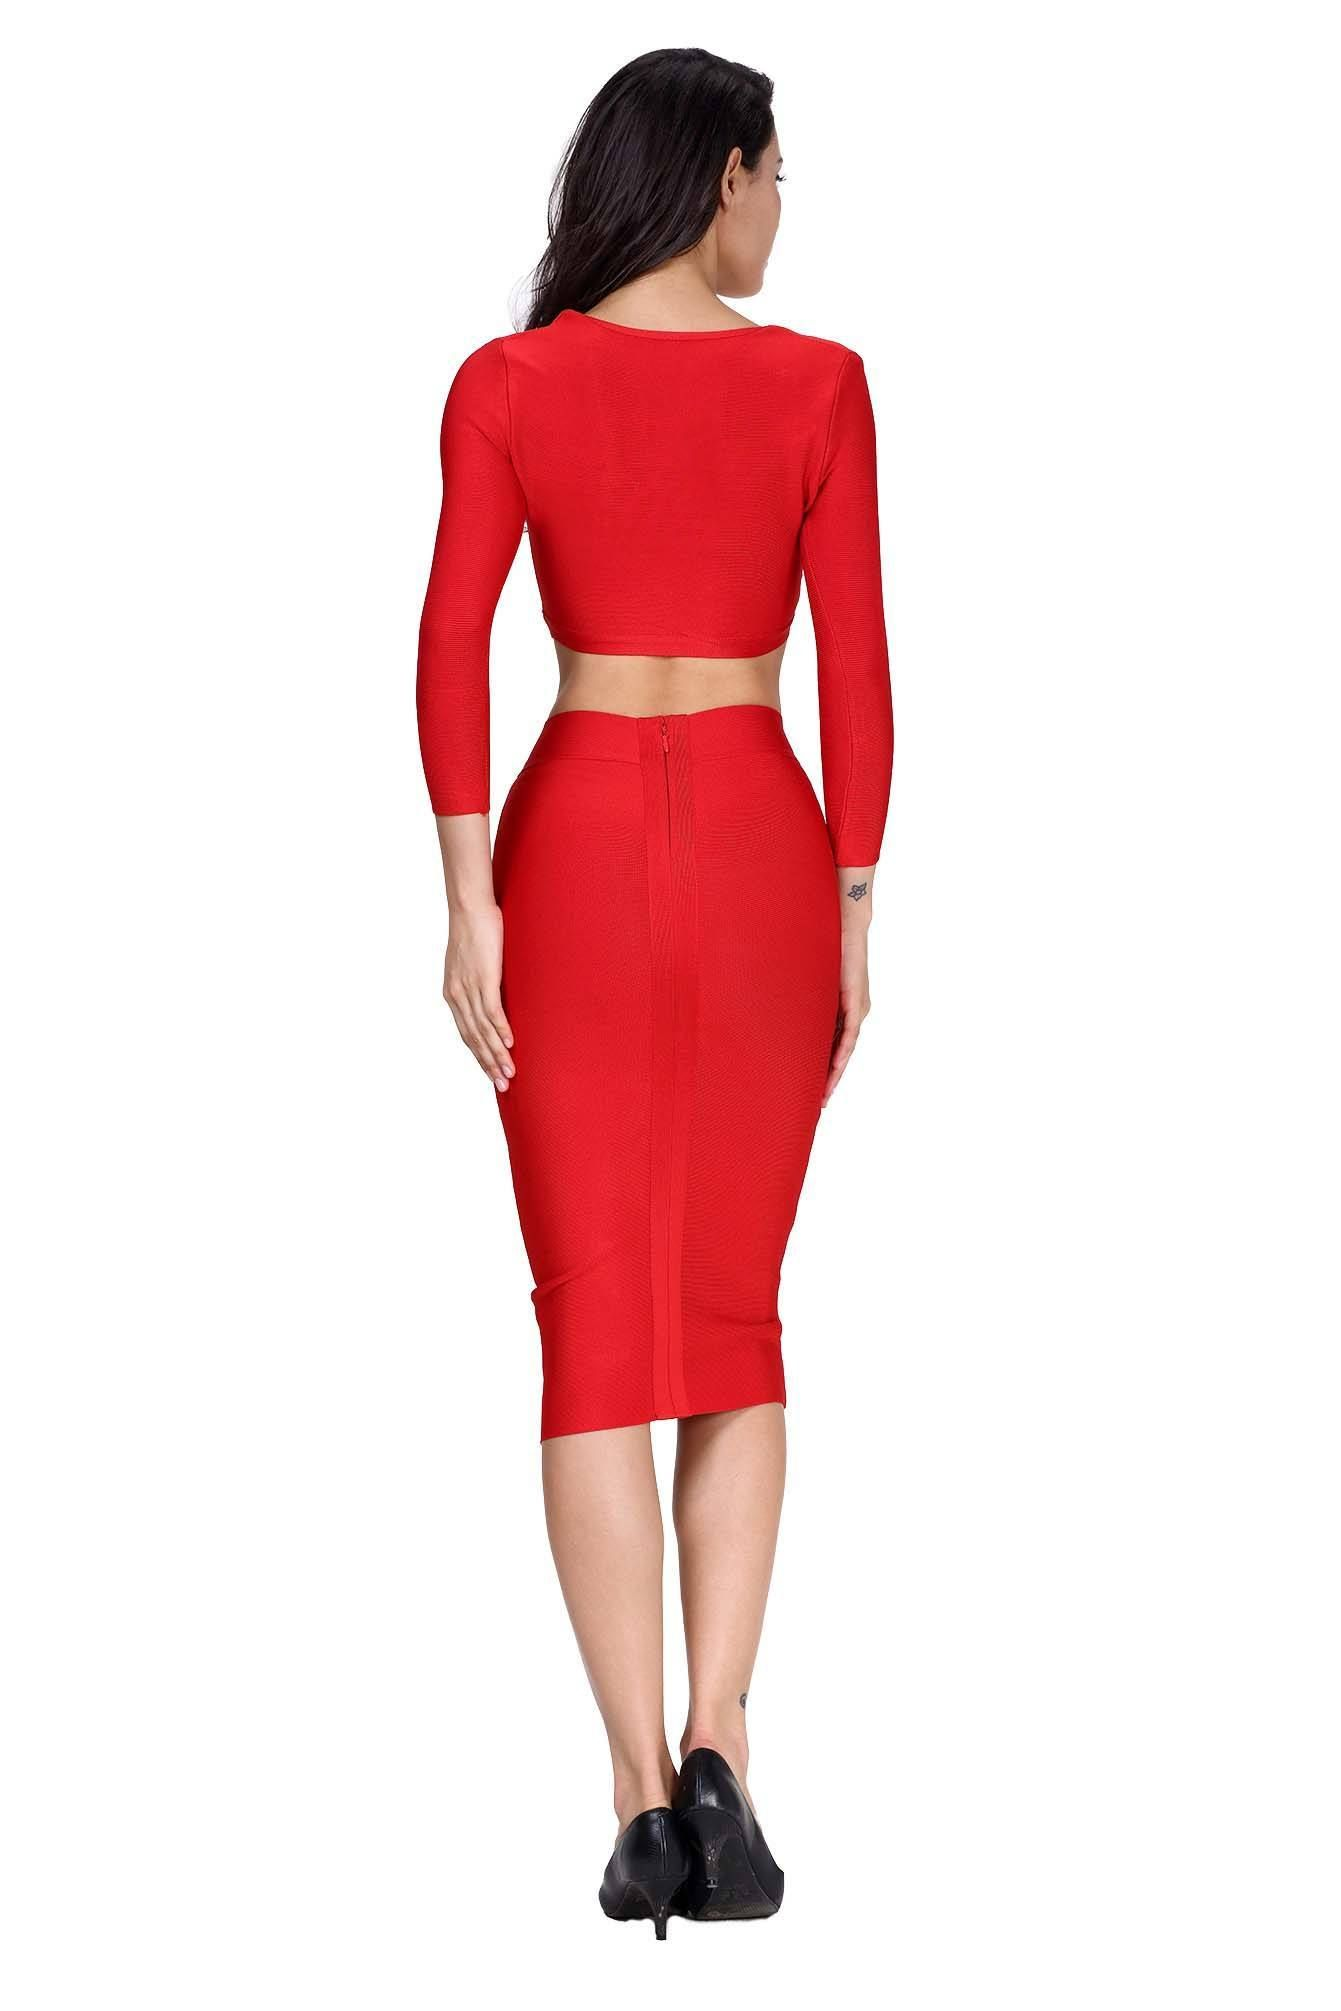 0da2fa0ae Red Two Piece Long Sleeve Bandage Dress - The Kewl Shop - 2 | All ...